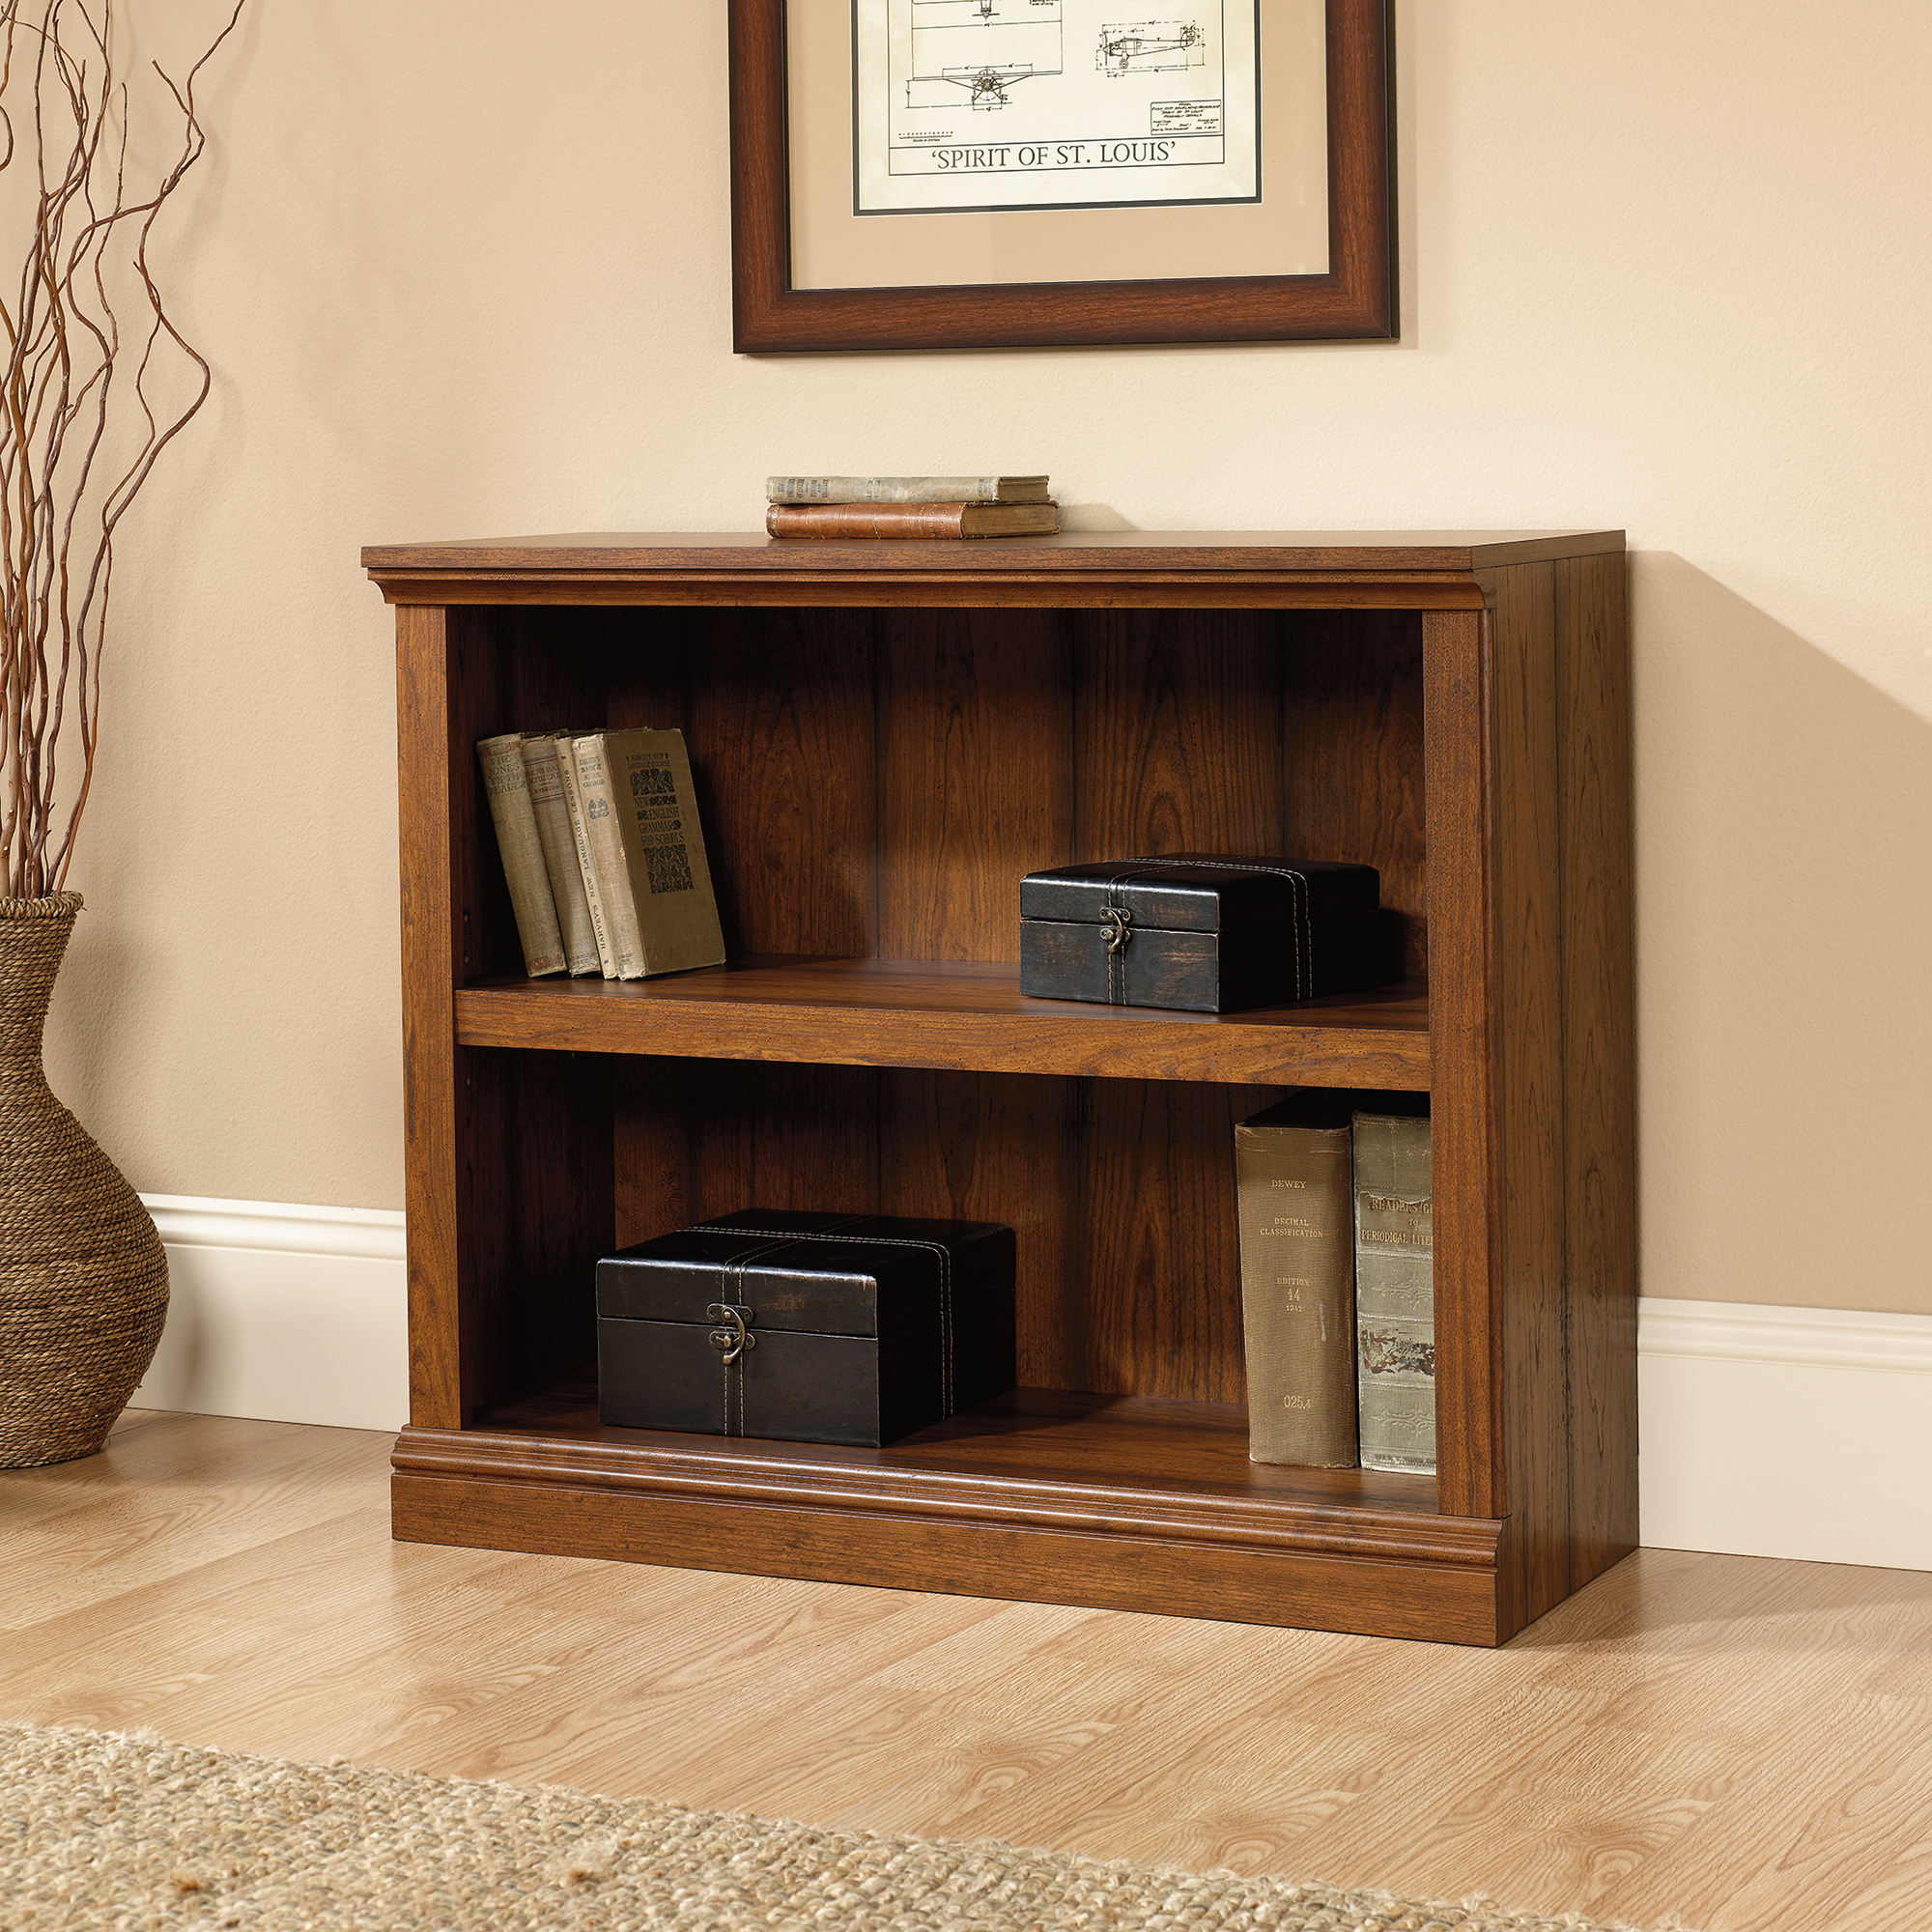 Chic 2-Shelf Bookcase ... sauder 2 shelf bookcase